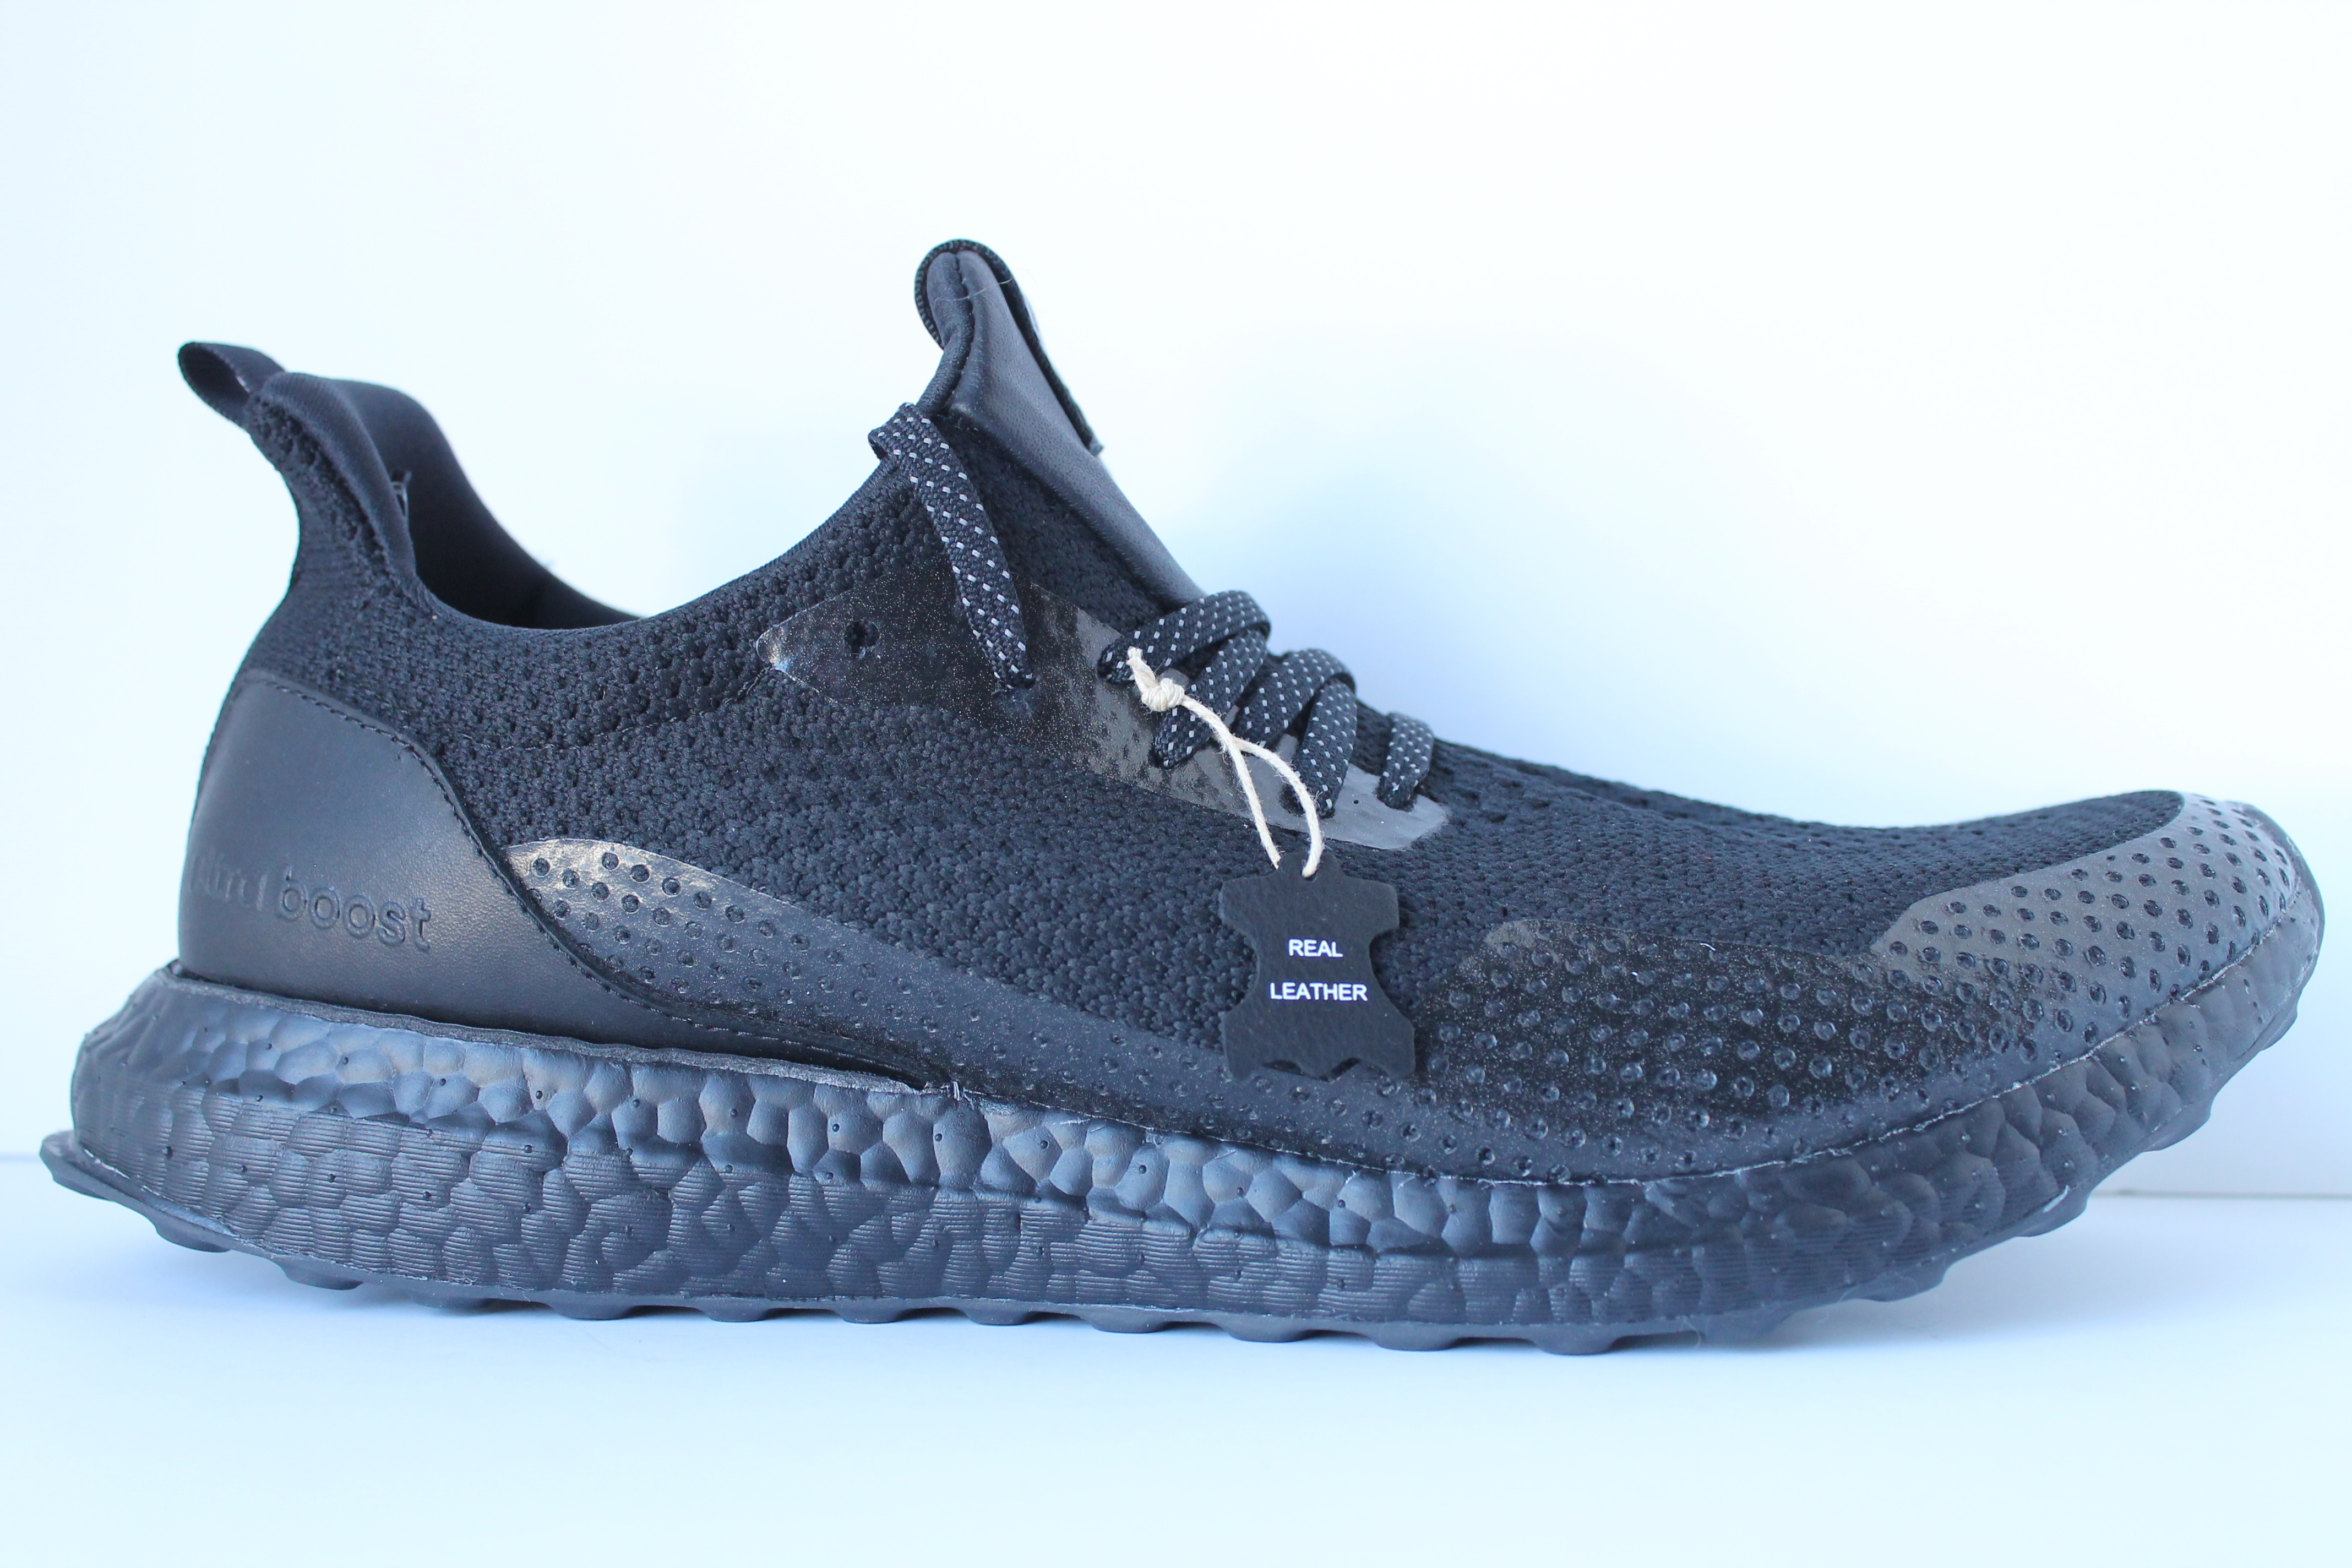 8808f5cfee6 Adidas Ultra Boost Uncaged Haven - Triple Black